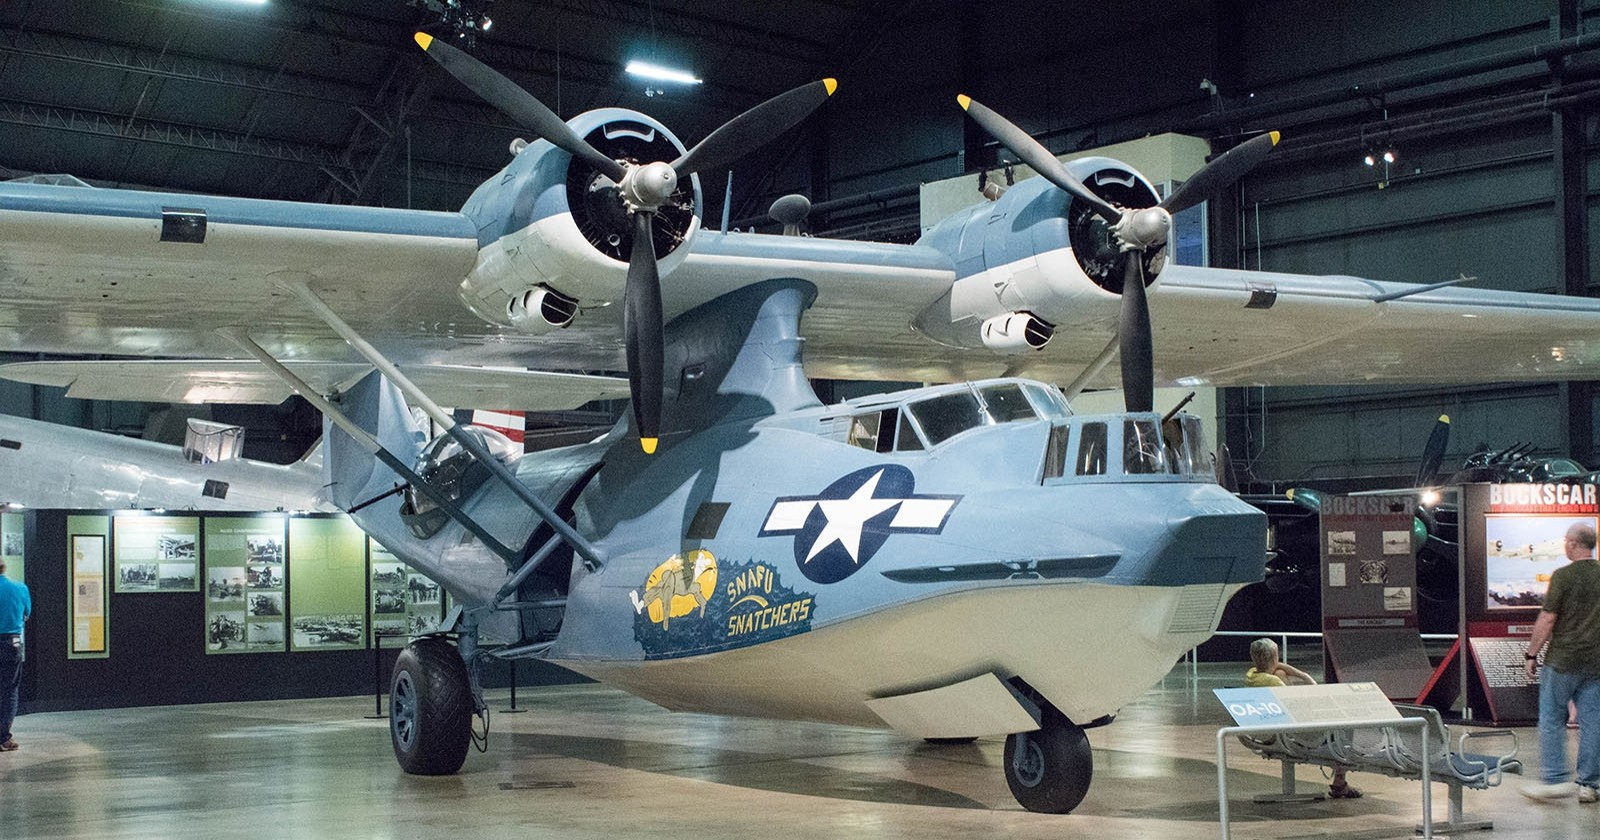 Consolidated PBY 5-A Catalina - Walk Around